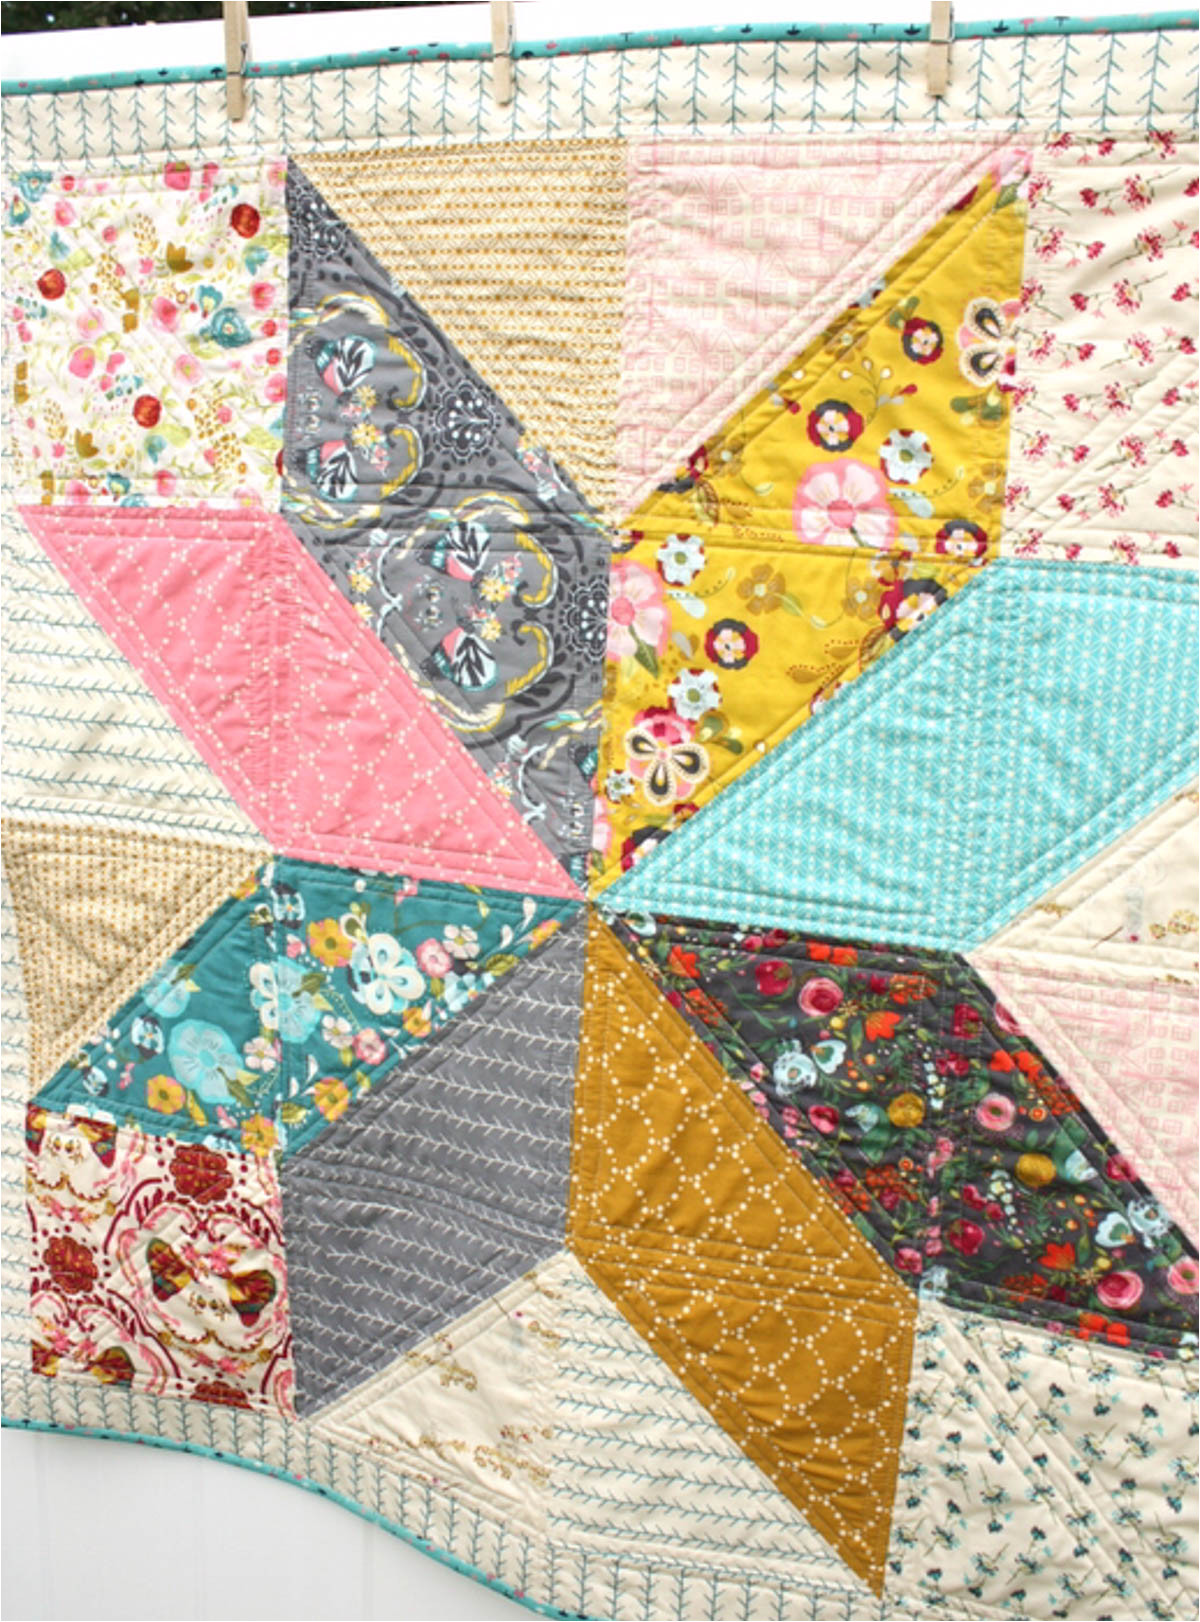 march 19 is national quilting day